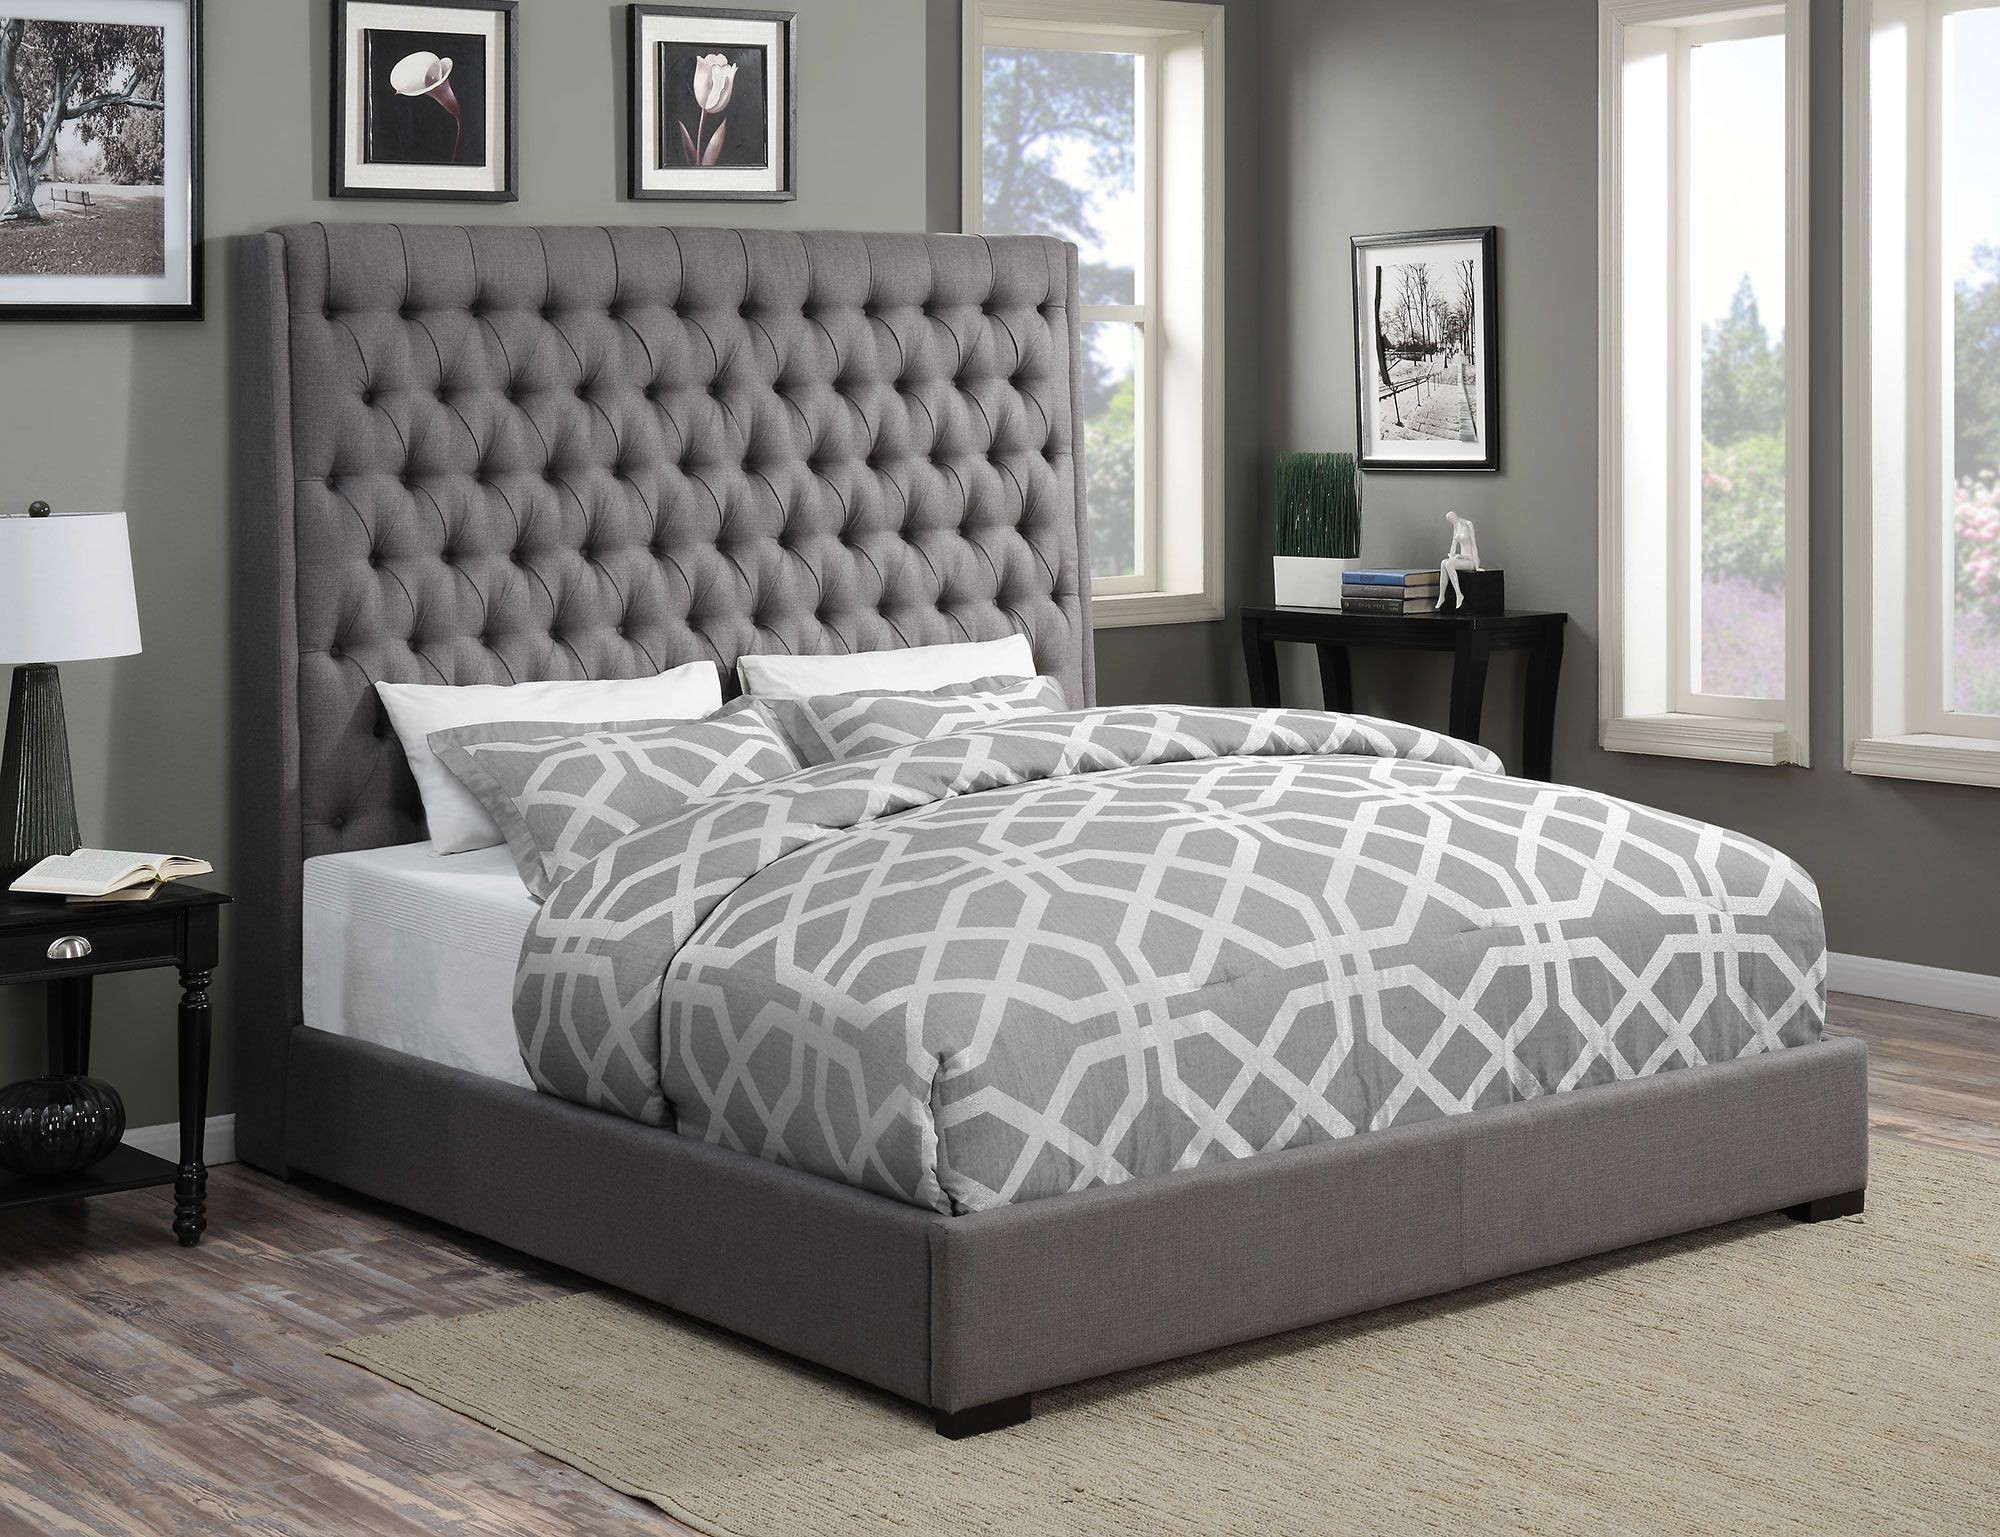 Camille Grey Queen Platform Bed From Coaster Coleman